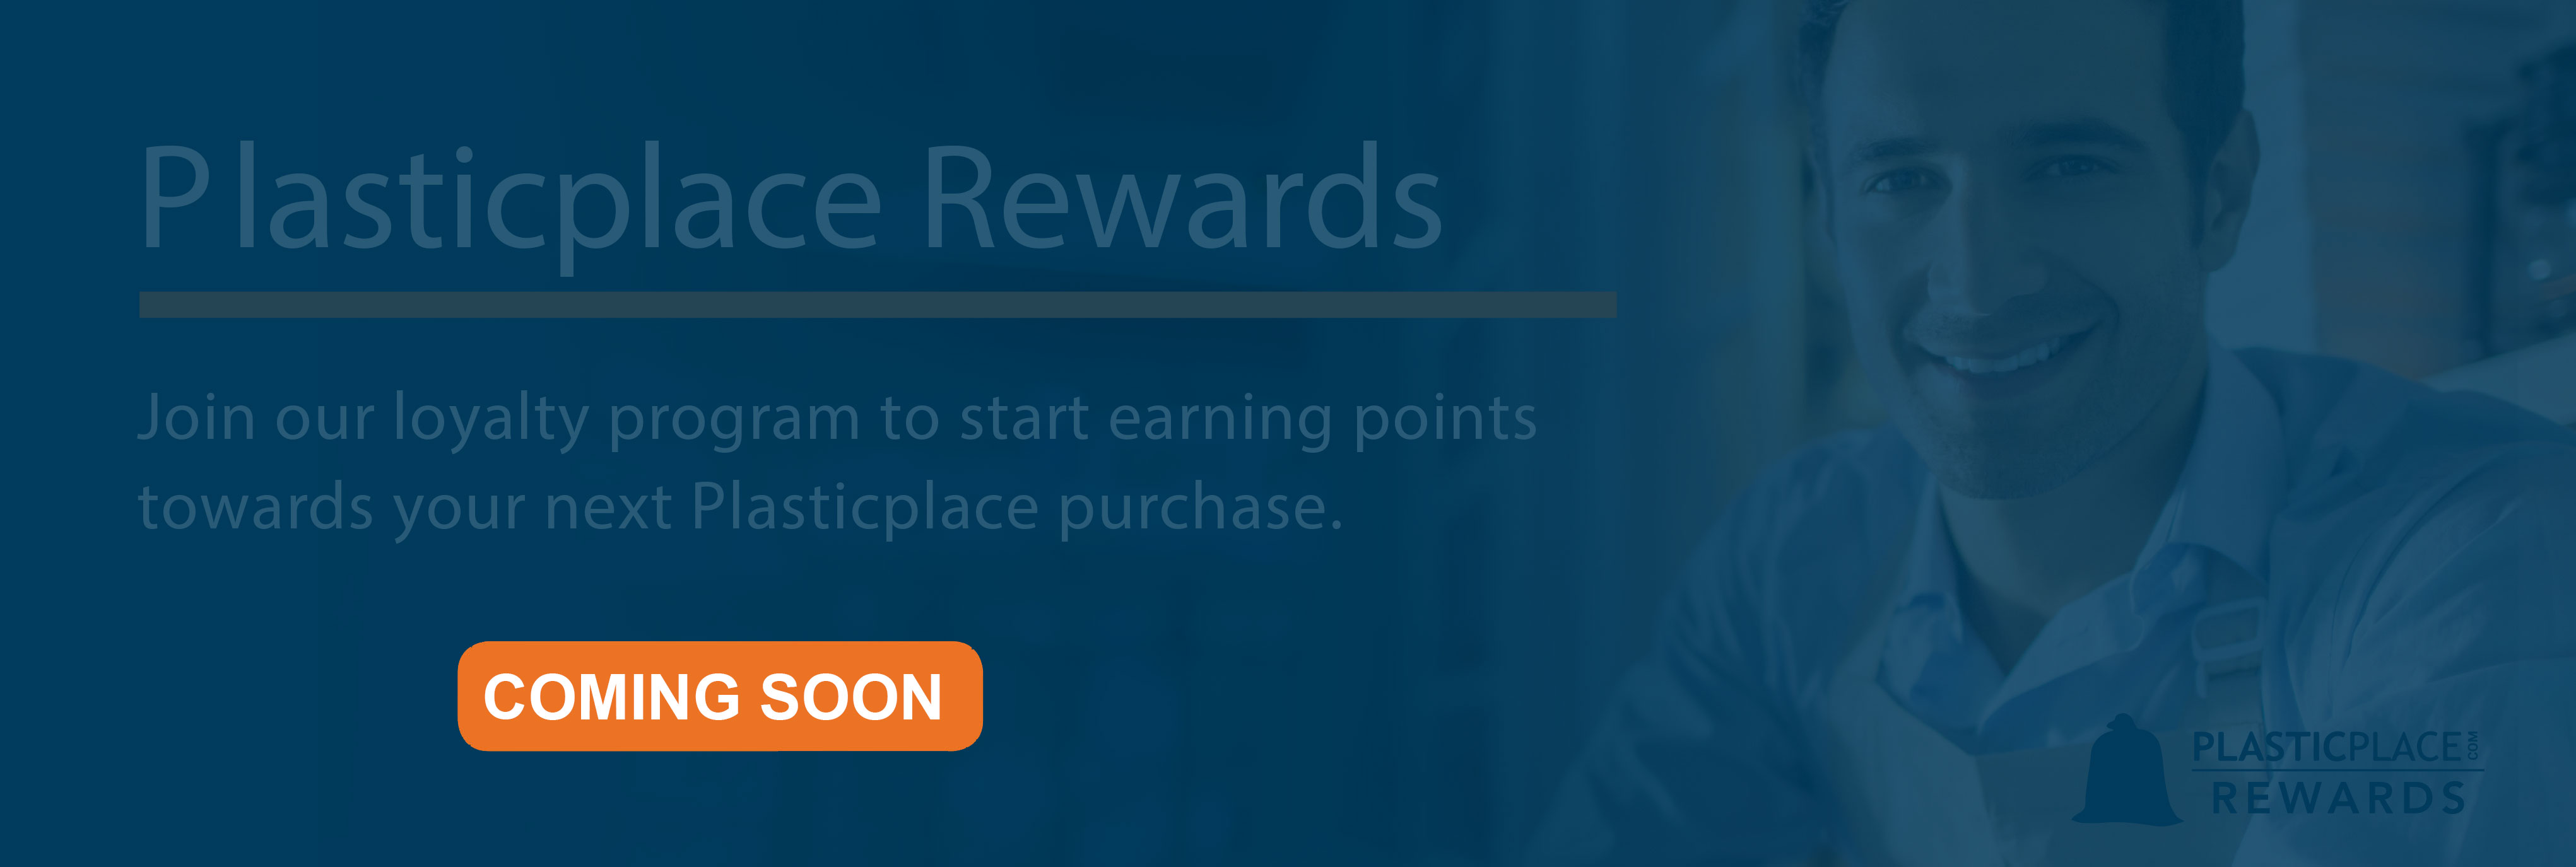 Join our loyalty program to start earning rewards